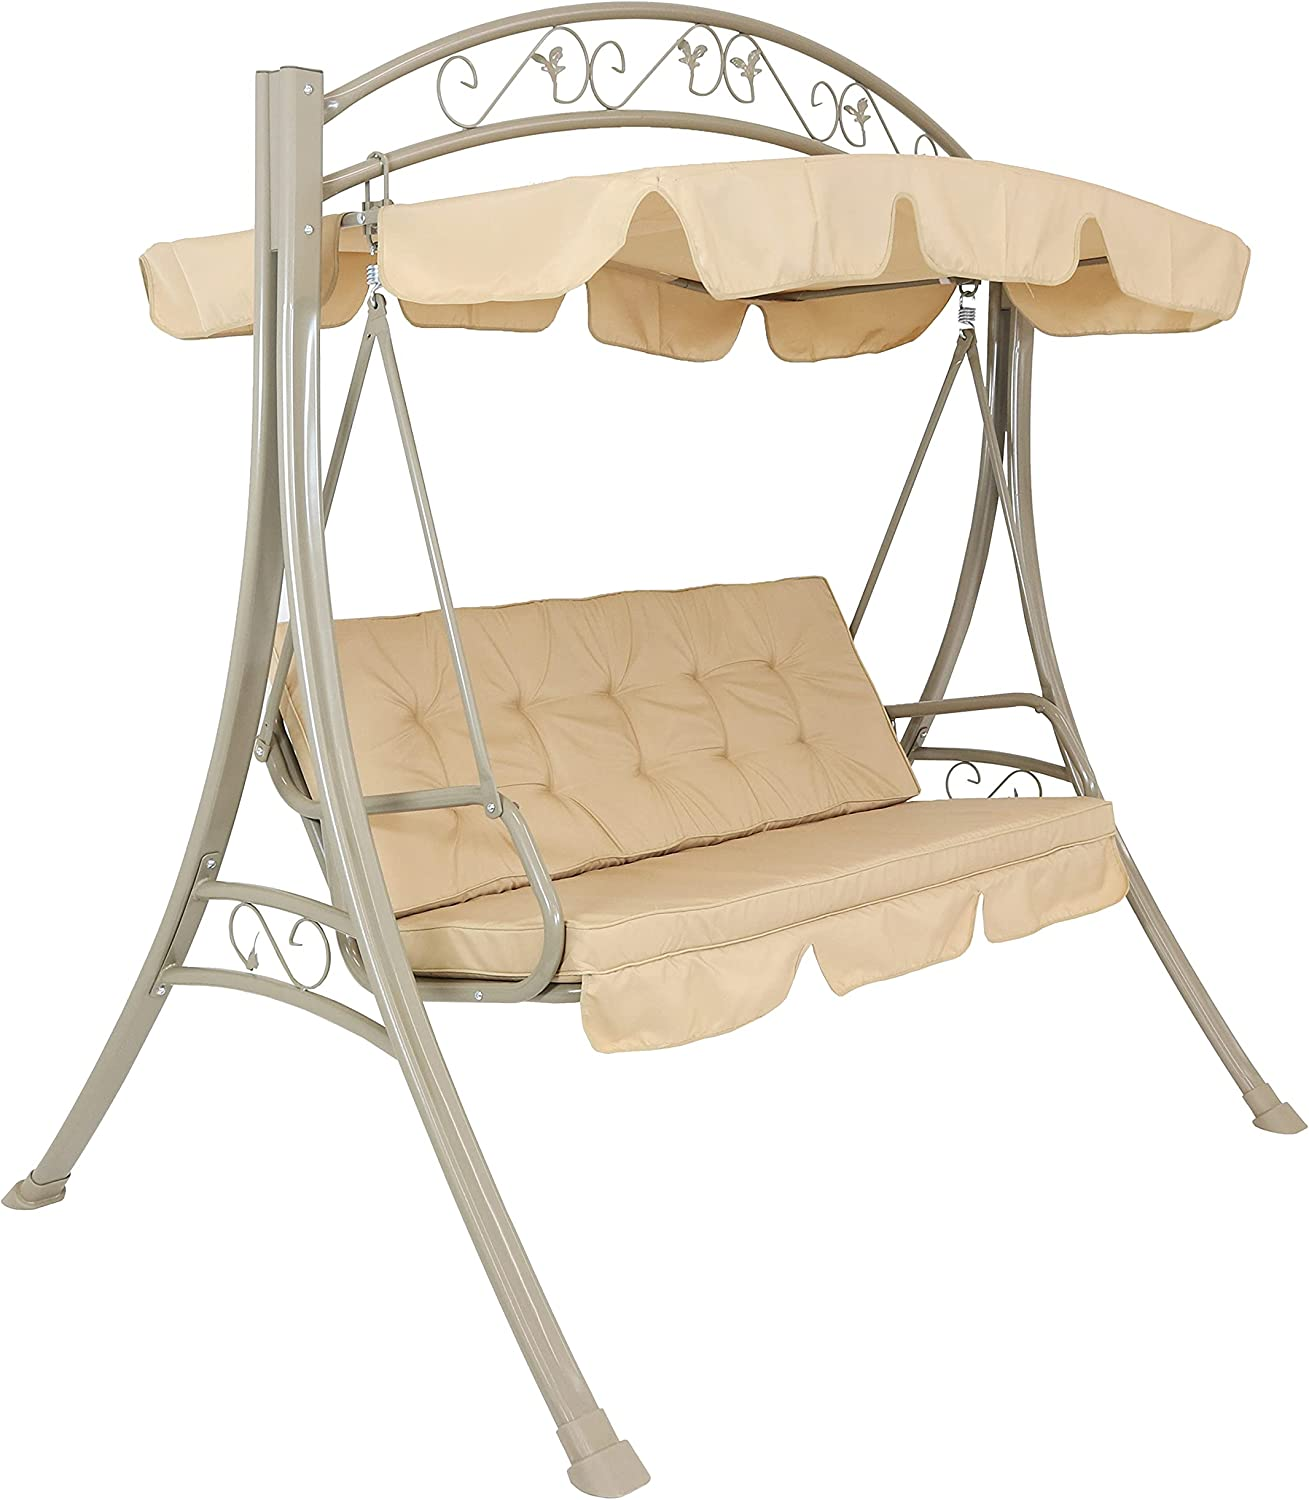 Sunnydaze Max 48% OFF Deluxe Outdoor Patio Swing with Adjustable 3- - Same day shipping Canopy